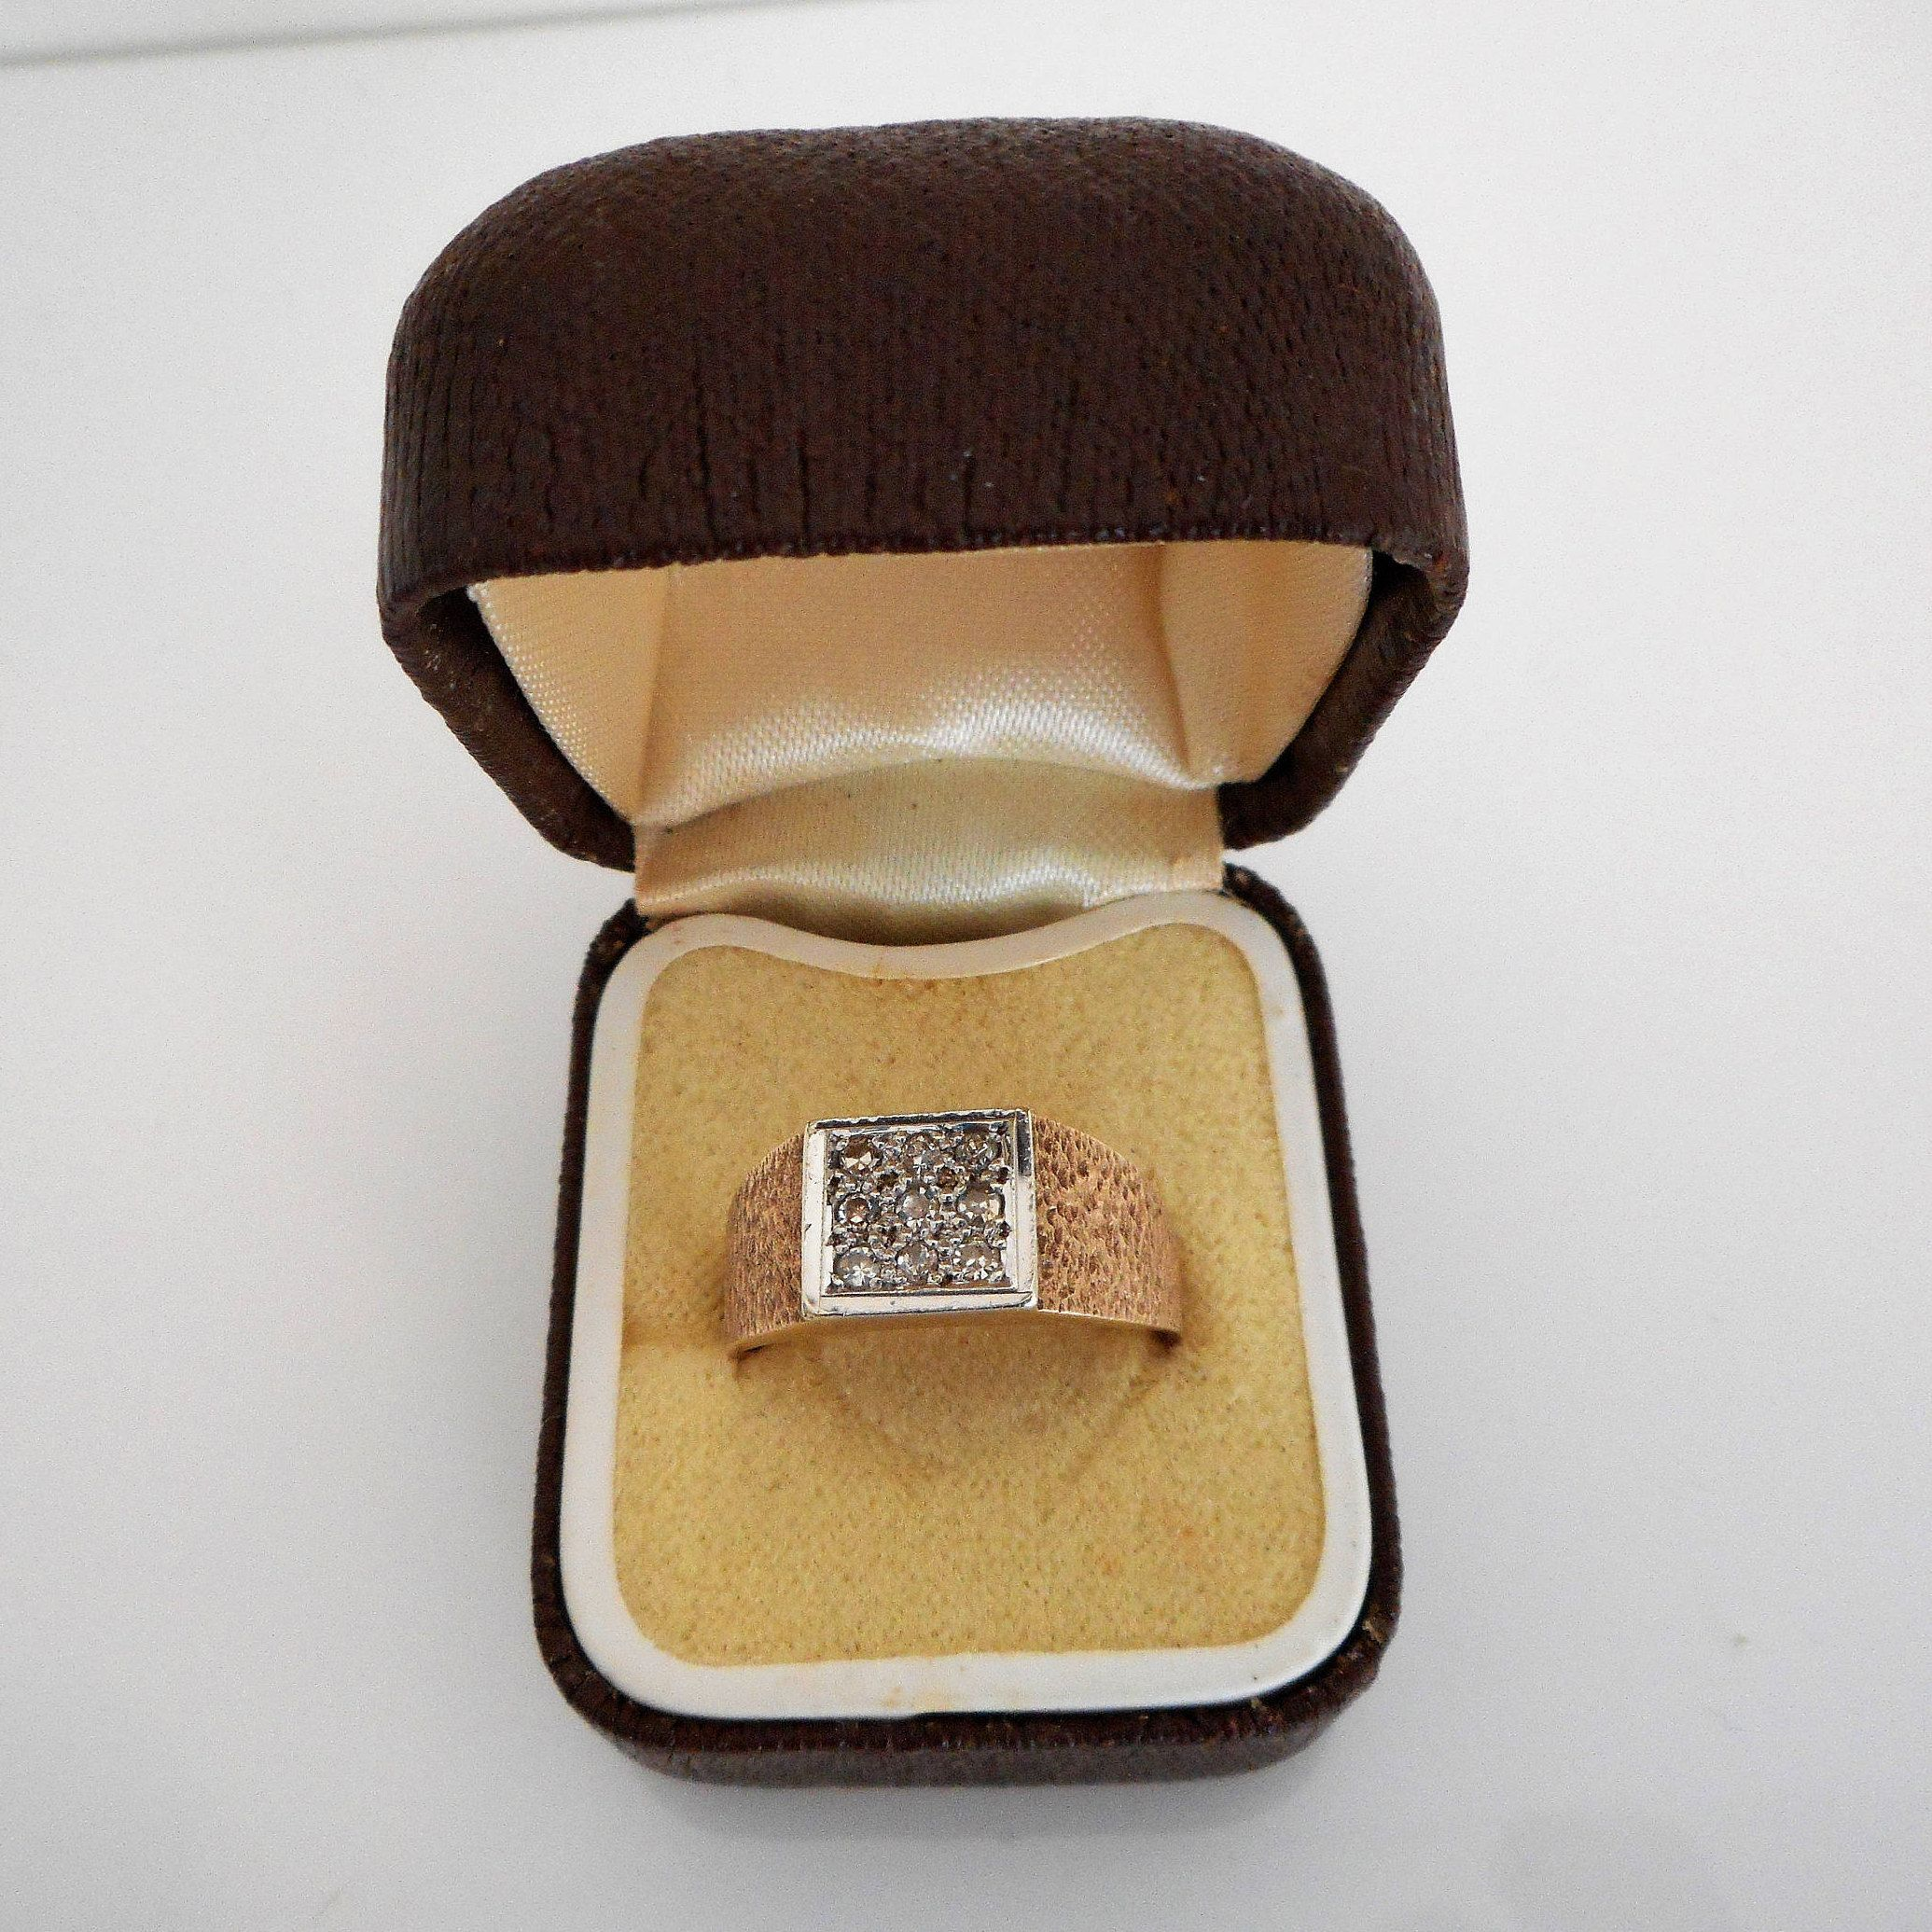 piaget mid modern jewelry j ring sale century carat band id rings for gold possession master at